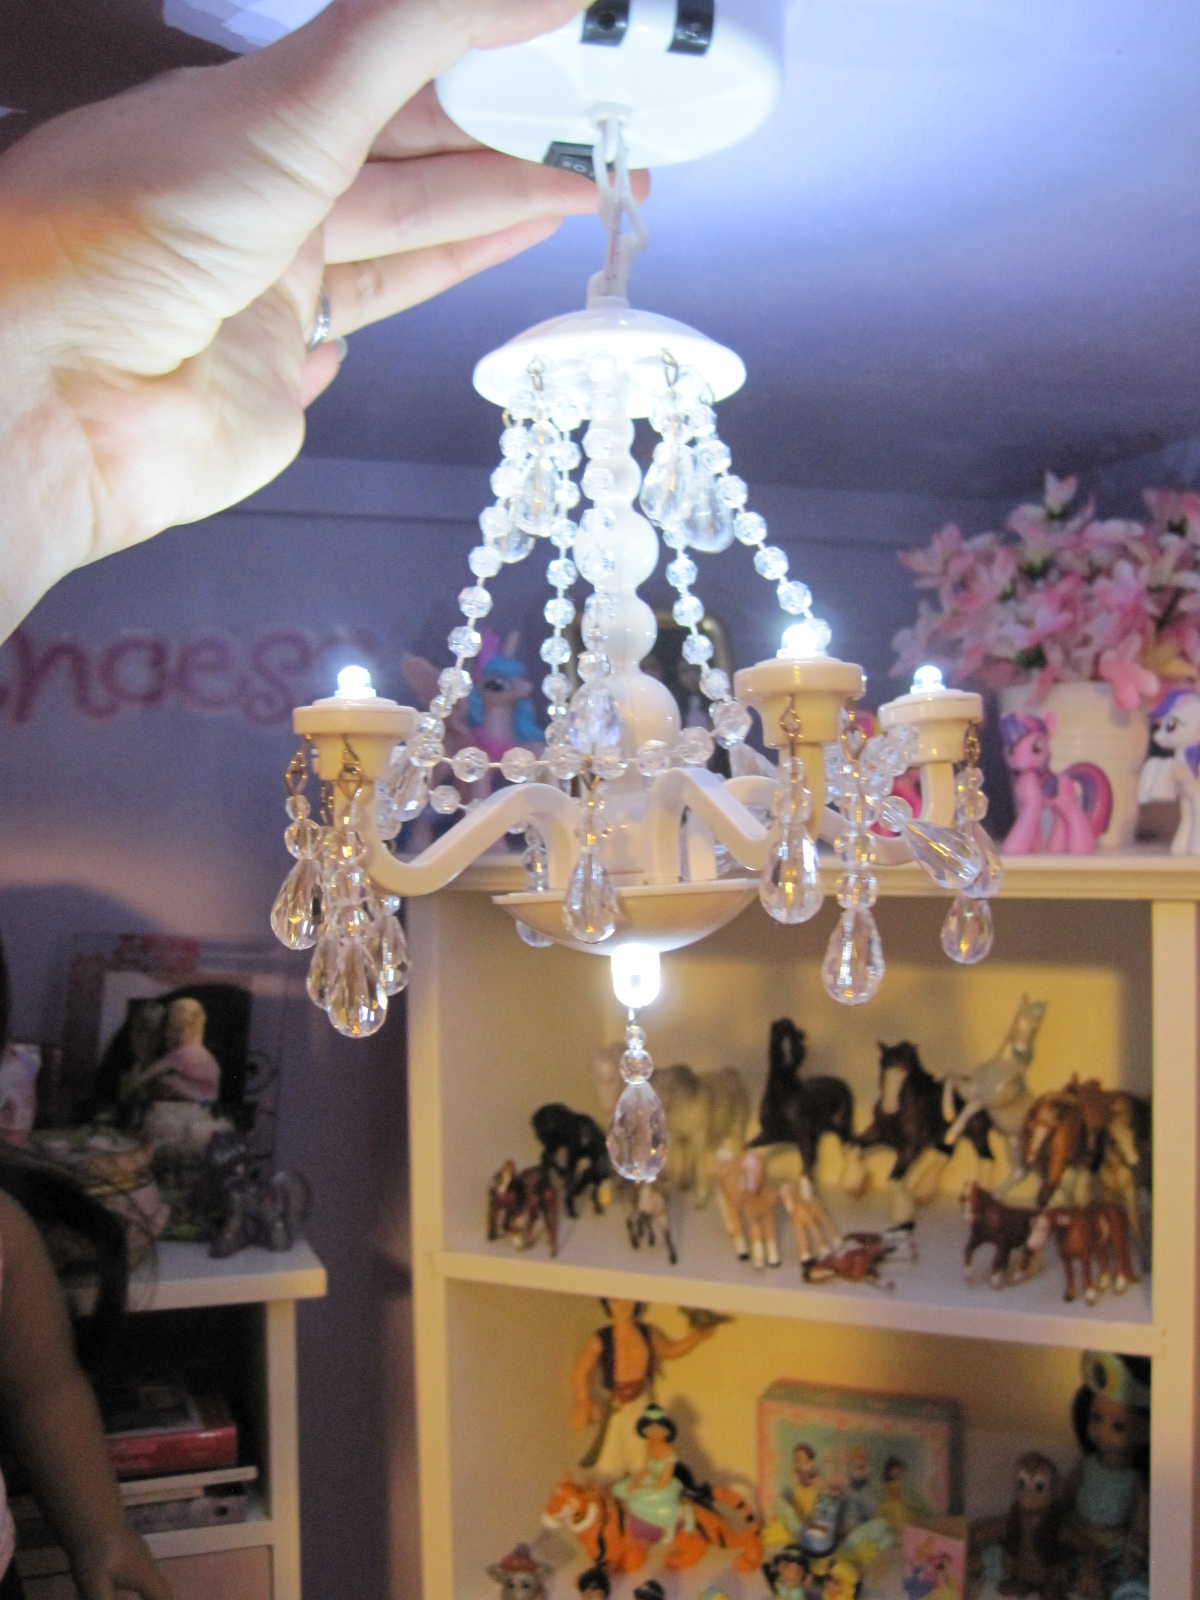 Never grow up a moms guide to dolls and more adorable doll never grow up a moms guide to dolls and more adorable doll sized chandelier at walmart arubaitofo Image collections